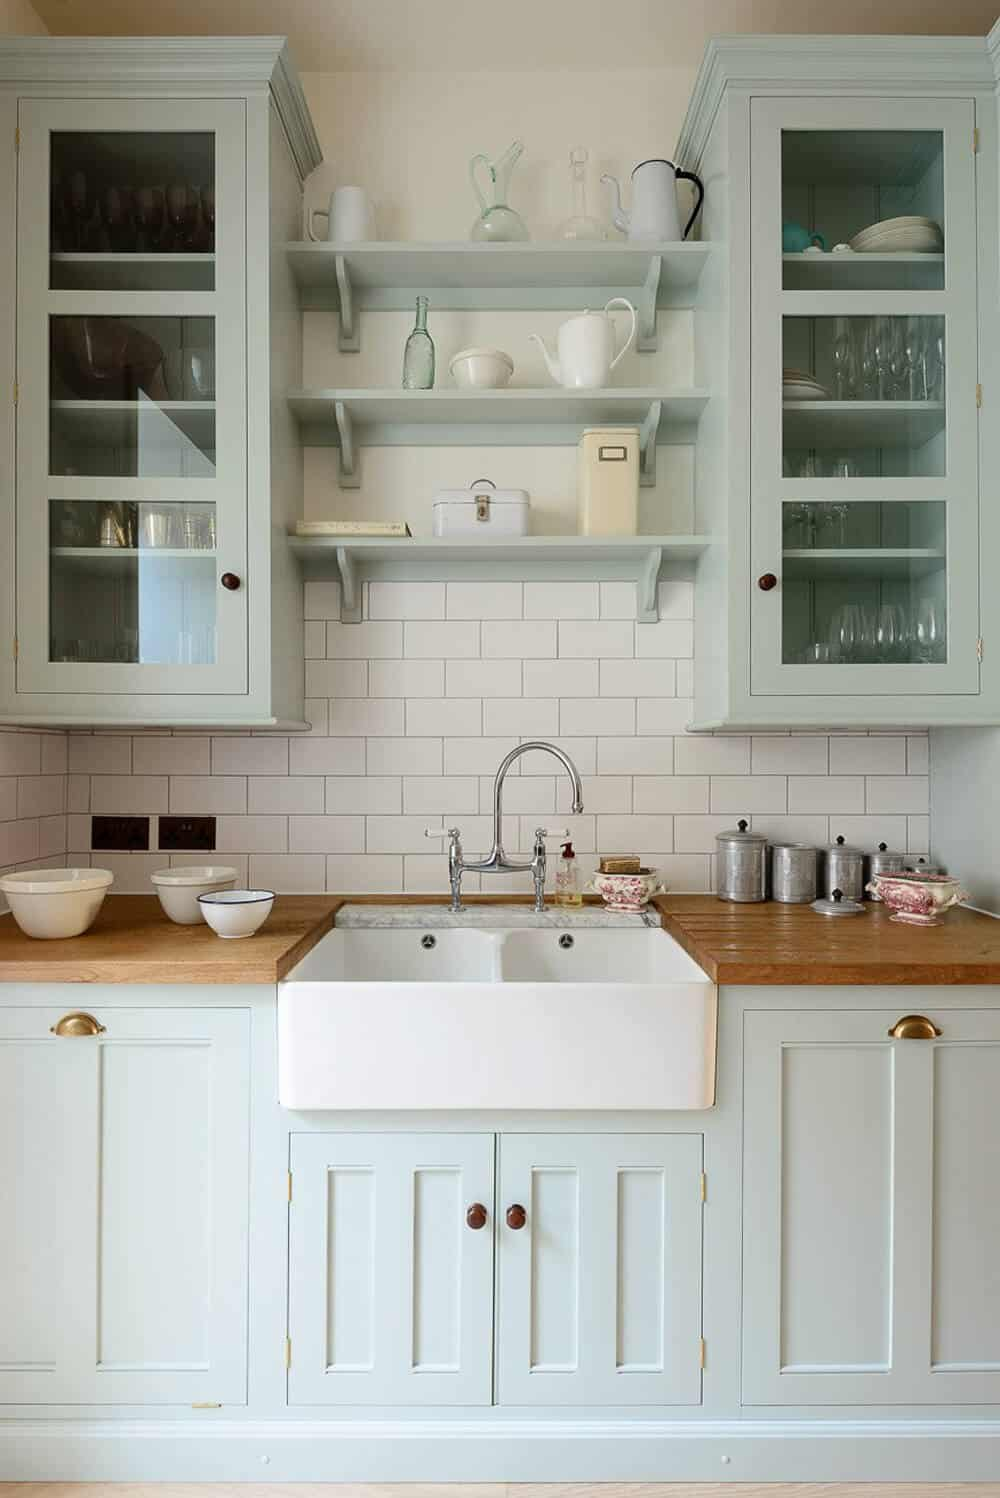 https://stylebyemilyhenderson.com/wp-content/uploads/2016/09/Devol-Kitchens__English-Shaker_Traditional-Design_Kitchen_Simple_Tudor_Country_Designer-Spotlight_Emily-Henderson_Inspiration_4.jpg